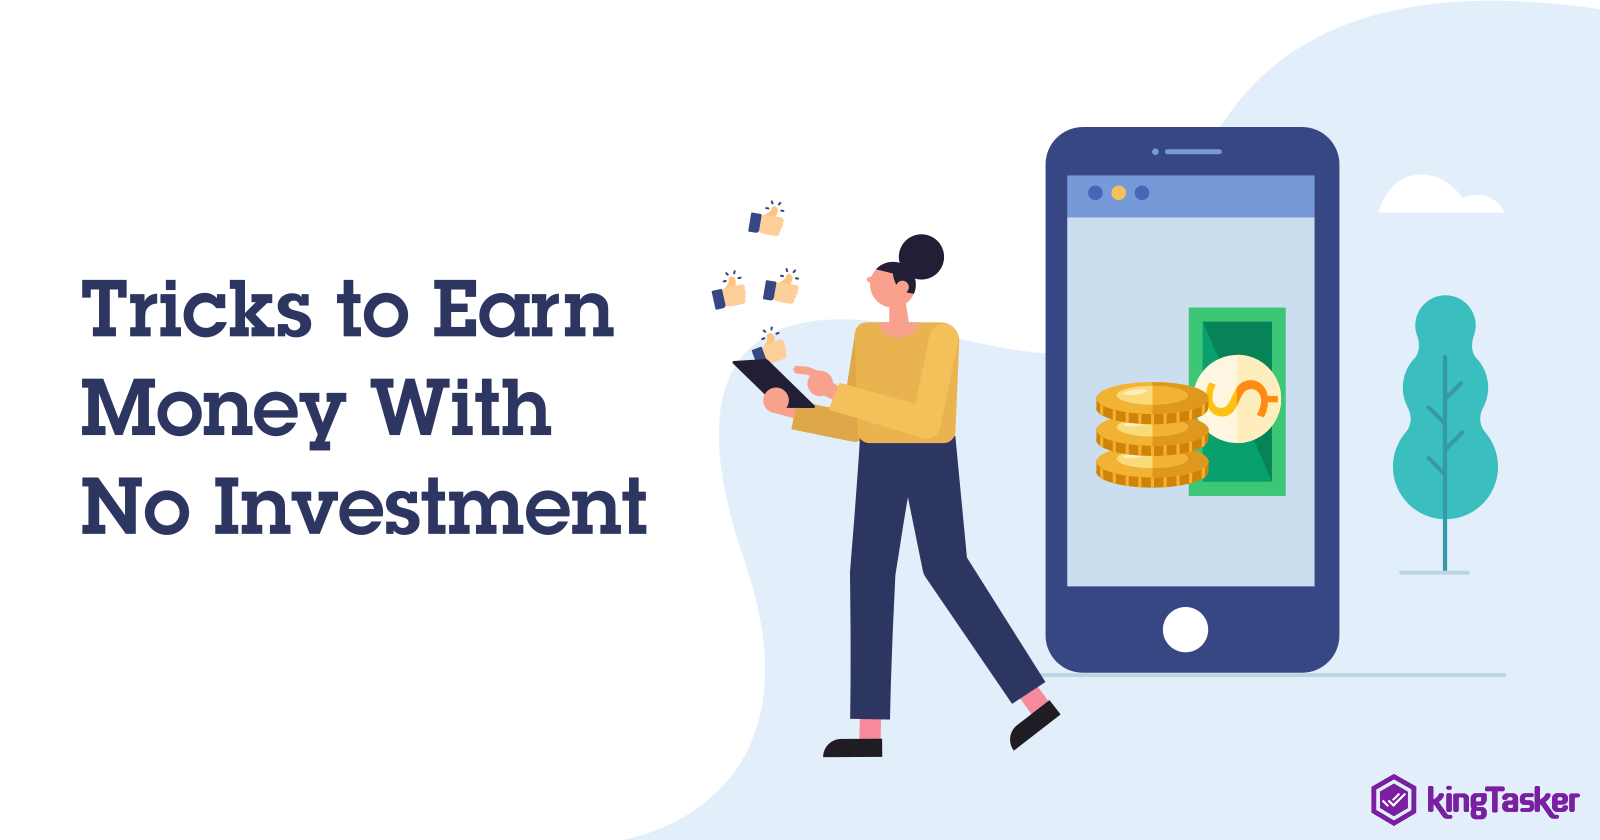 Tricks to Earn Money With No Investment